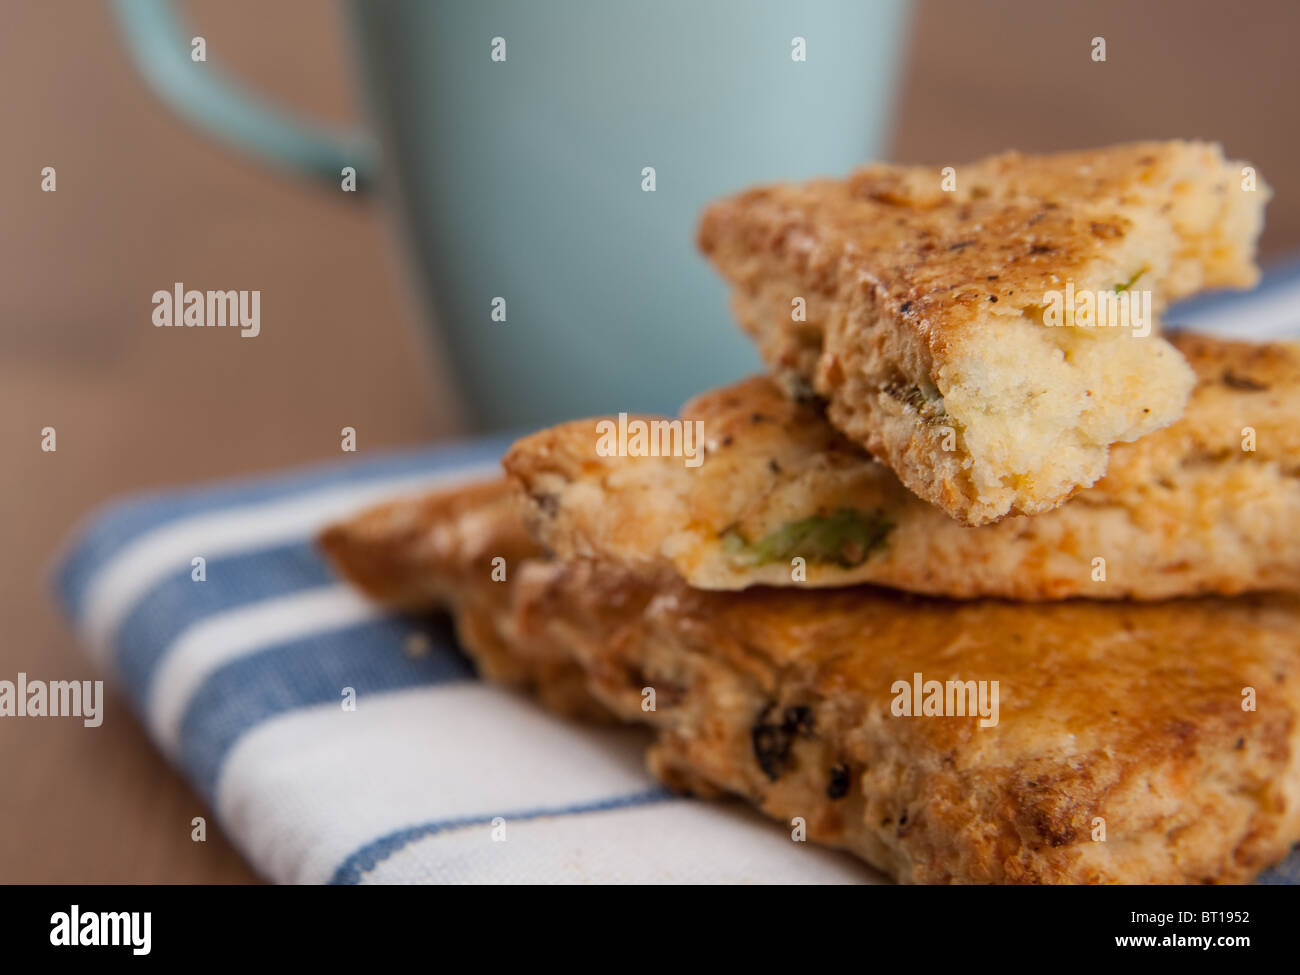 Savory Scones with Cup of Coffee or Tea for Breakfast - Stock Image